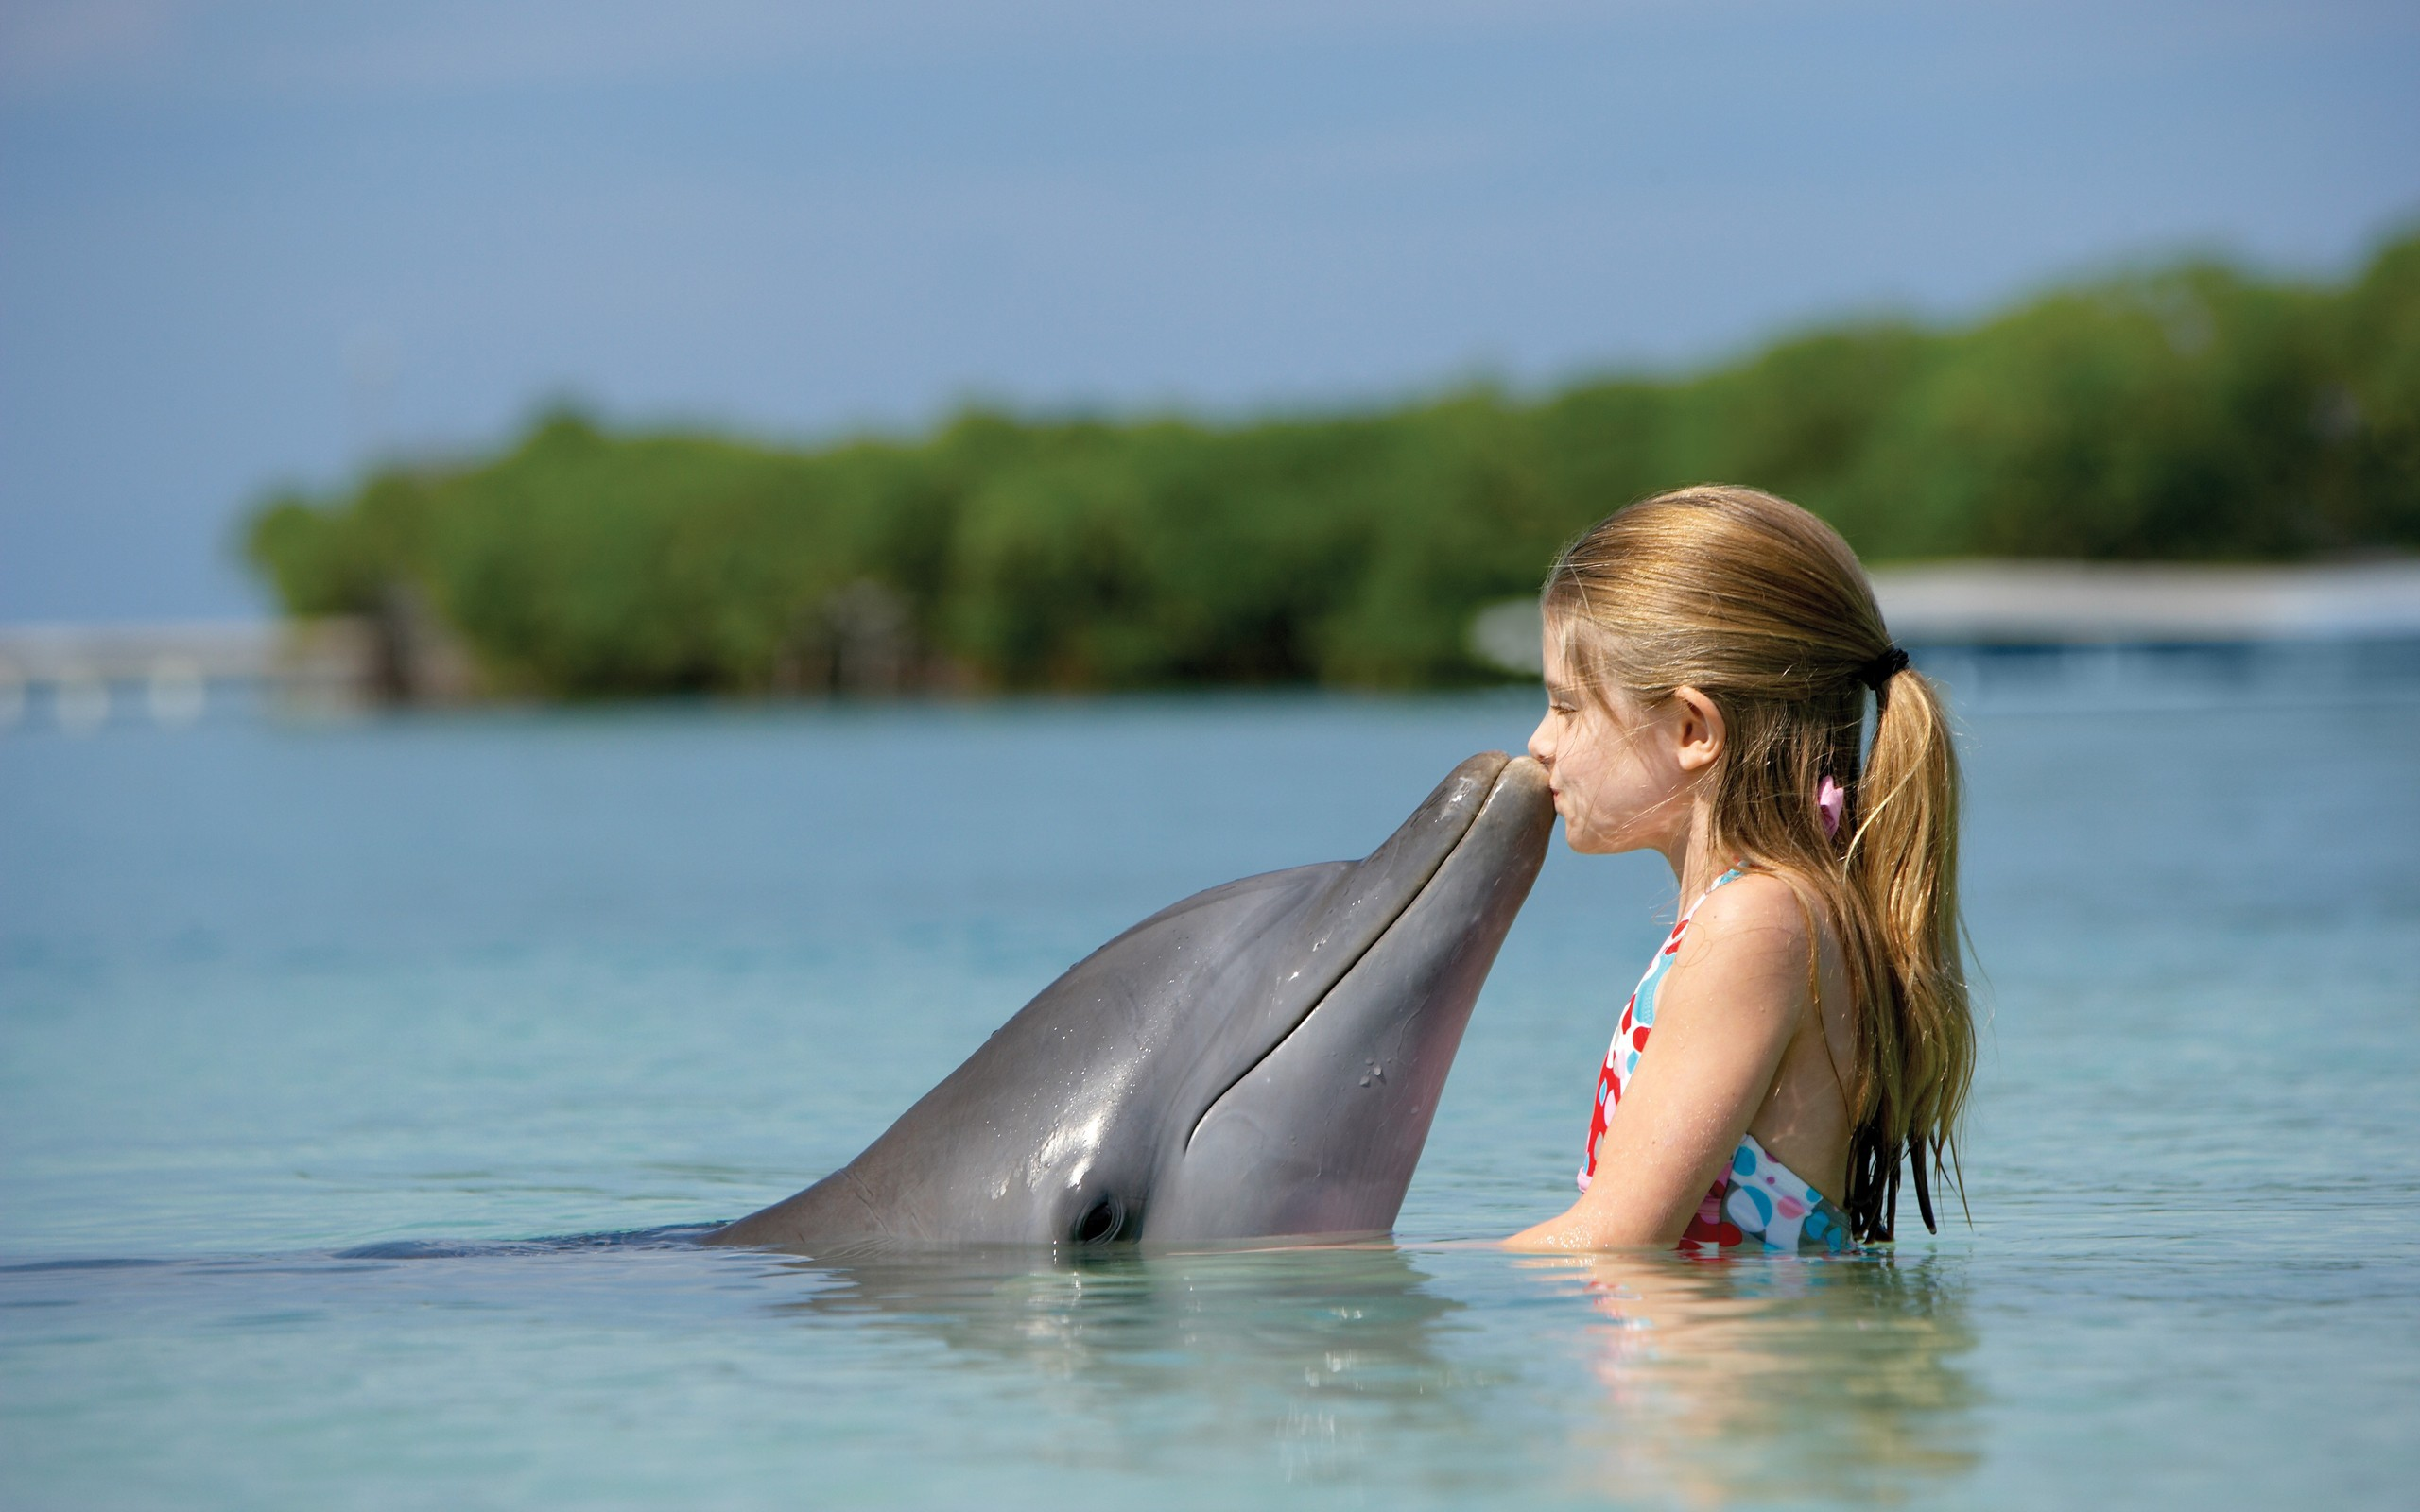 People___Children___Girl_kissing_Dolphin_054358_